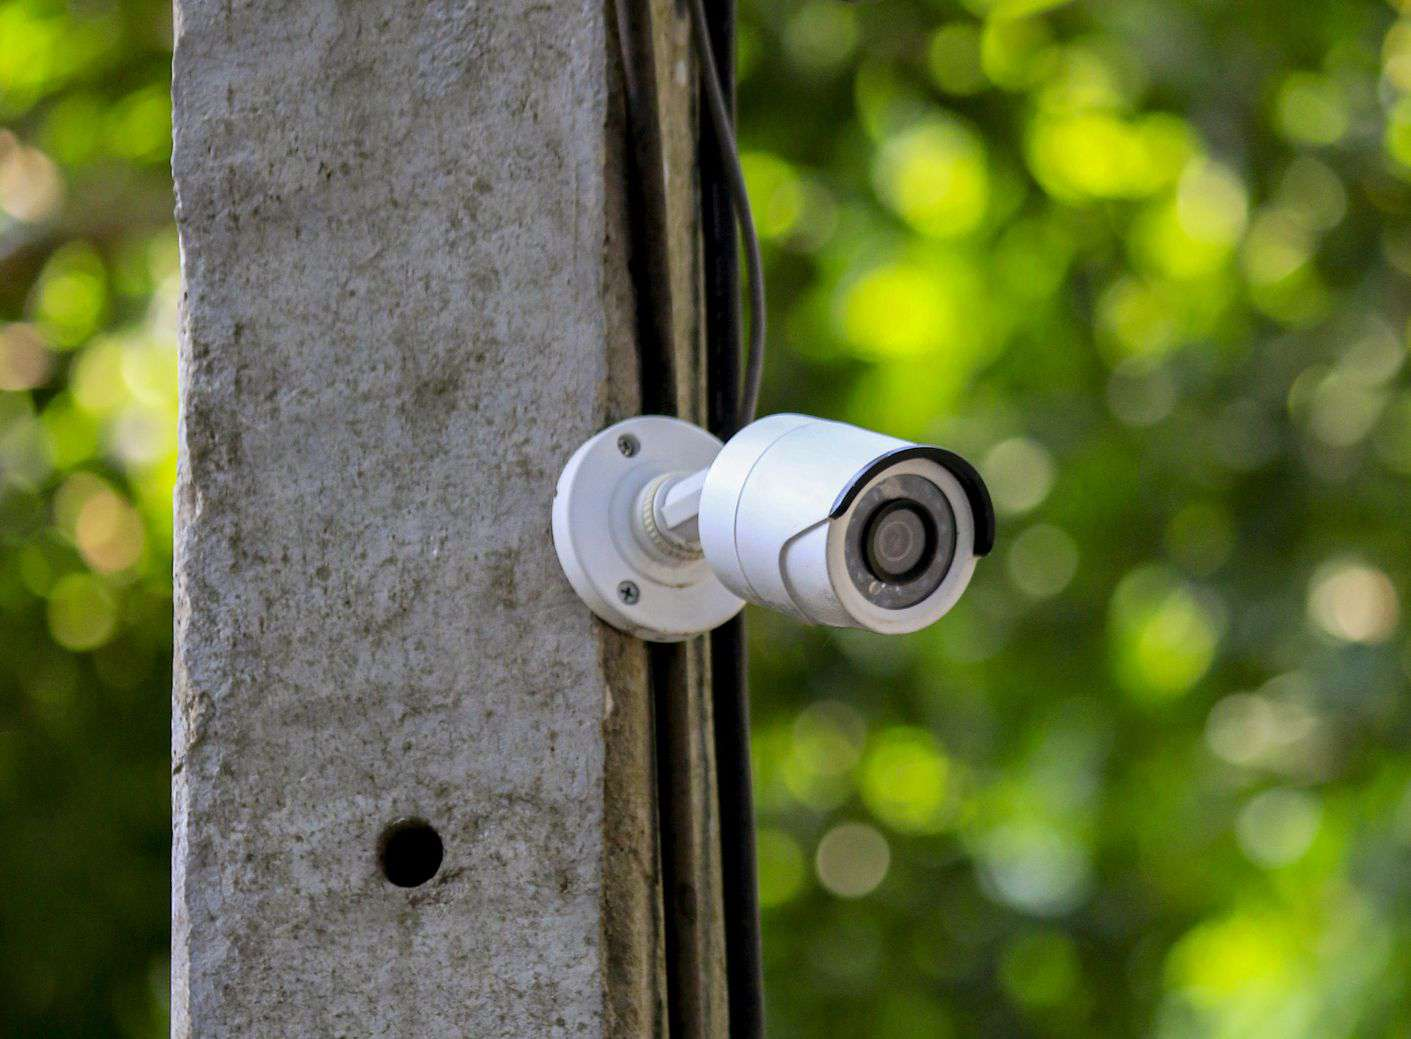 Image of outdoor security camera near wires